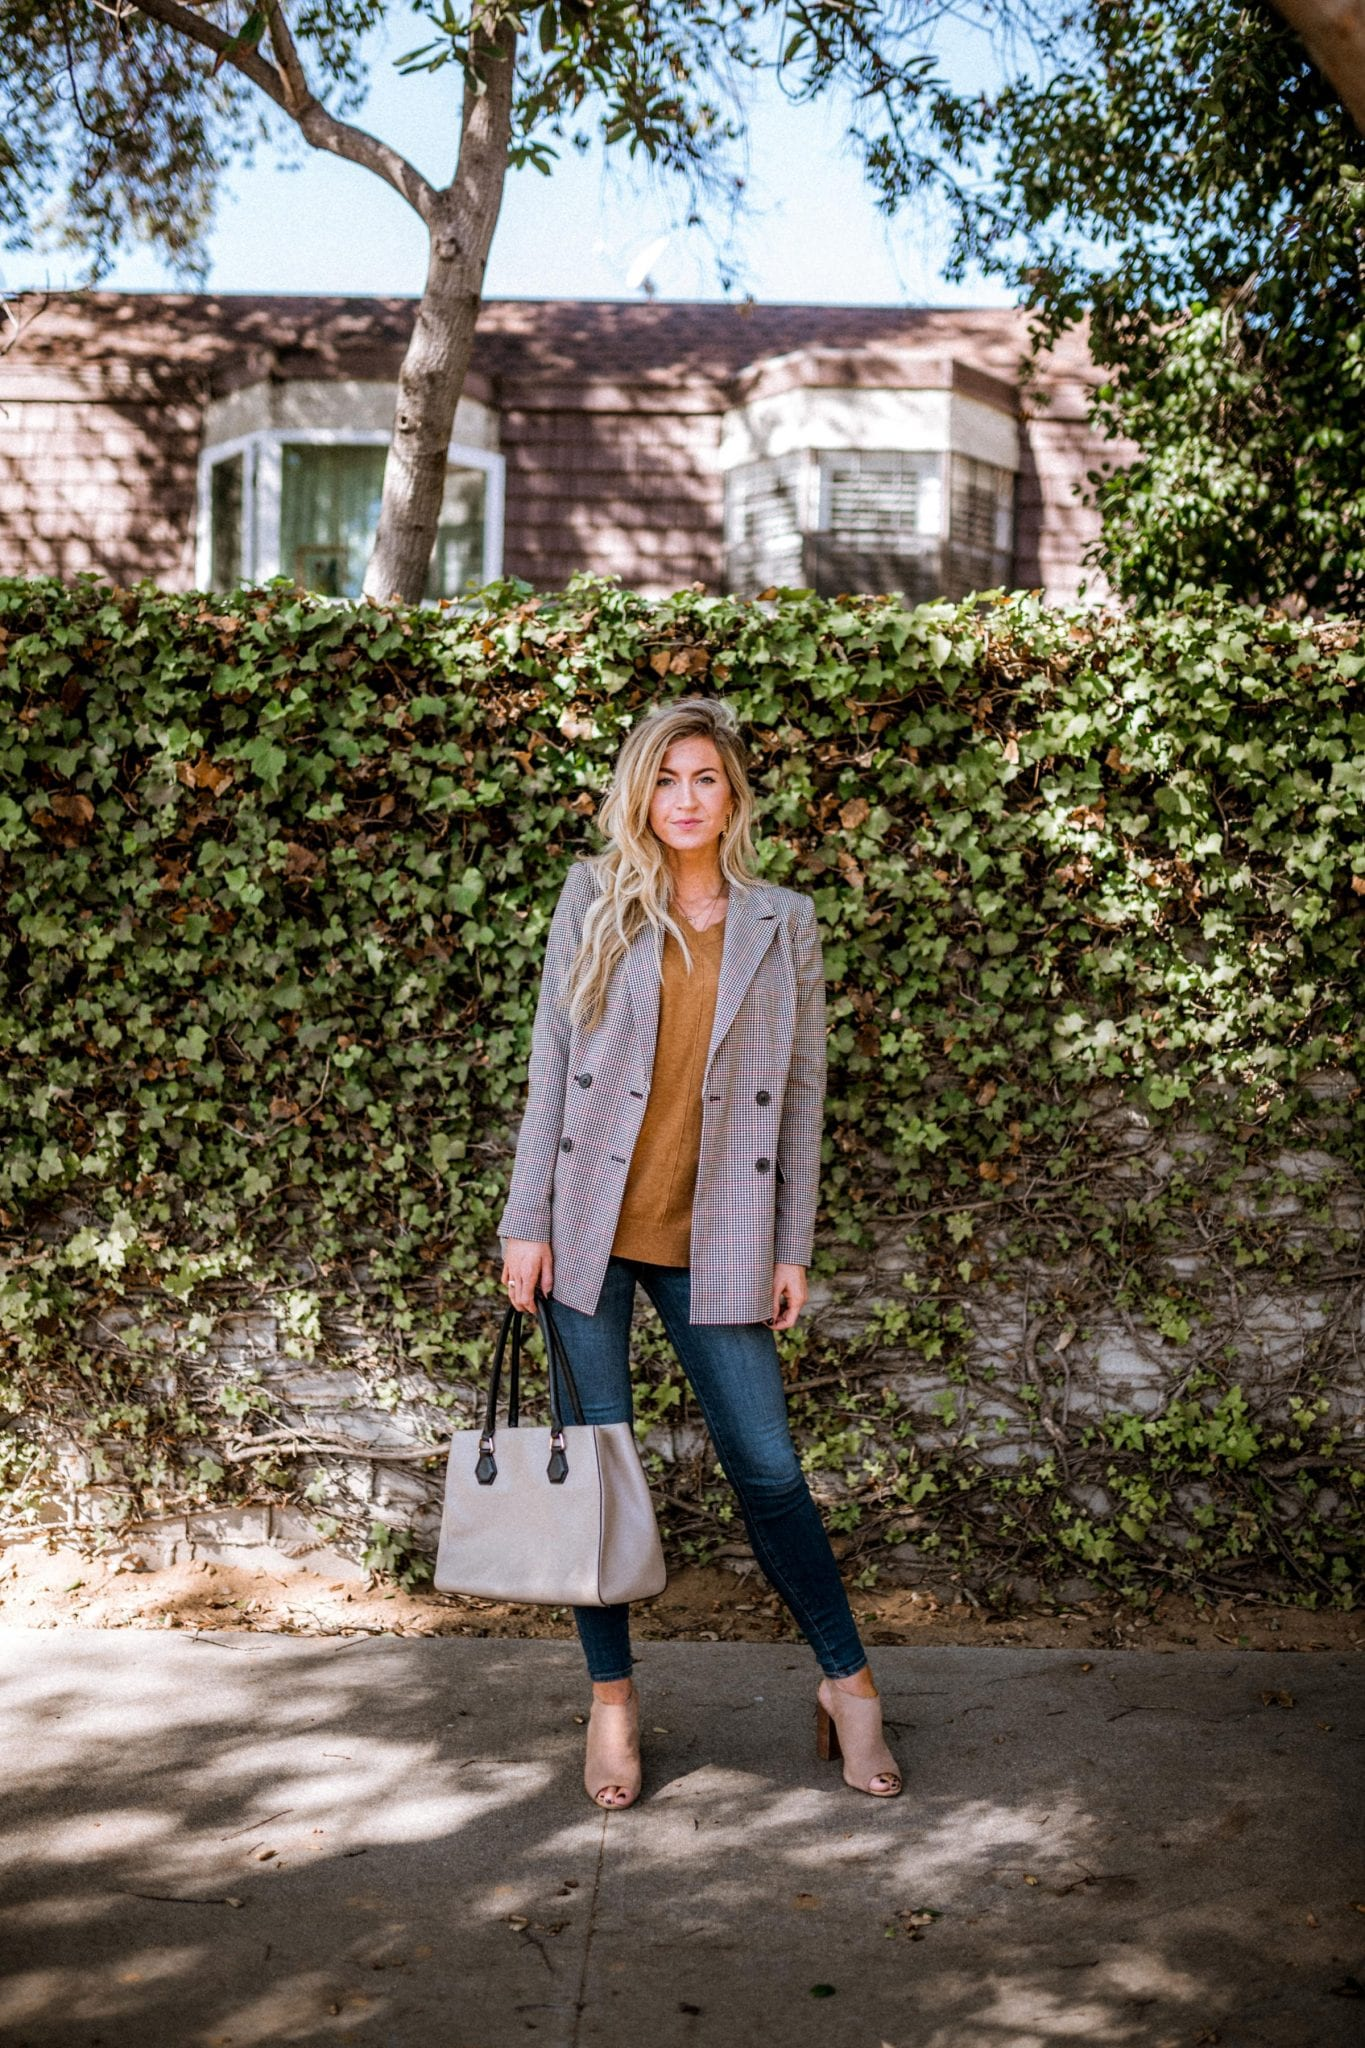 4 WAYS TO STYLE A BLAZER + MY FAVORITE BLAZERS FOR UNDER $100